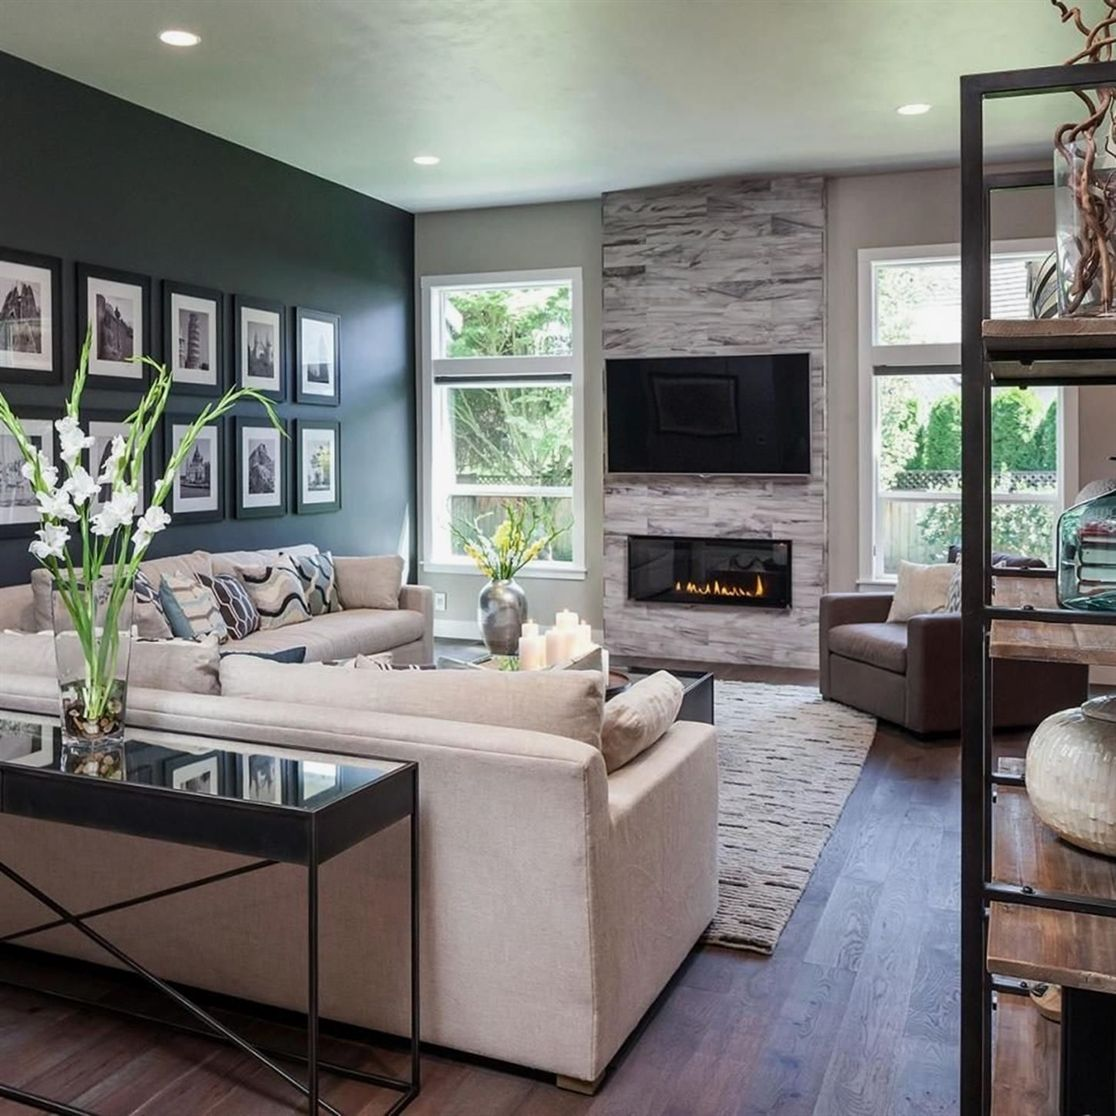 14 Small Living Room Decorating Ideas: Warm Living Room Decorating Ideas 14